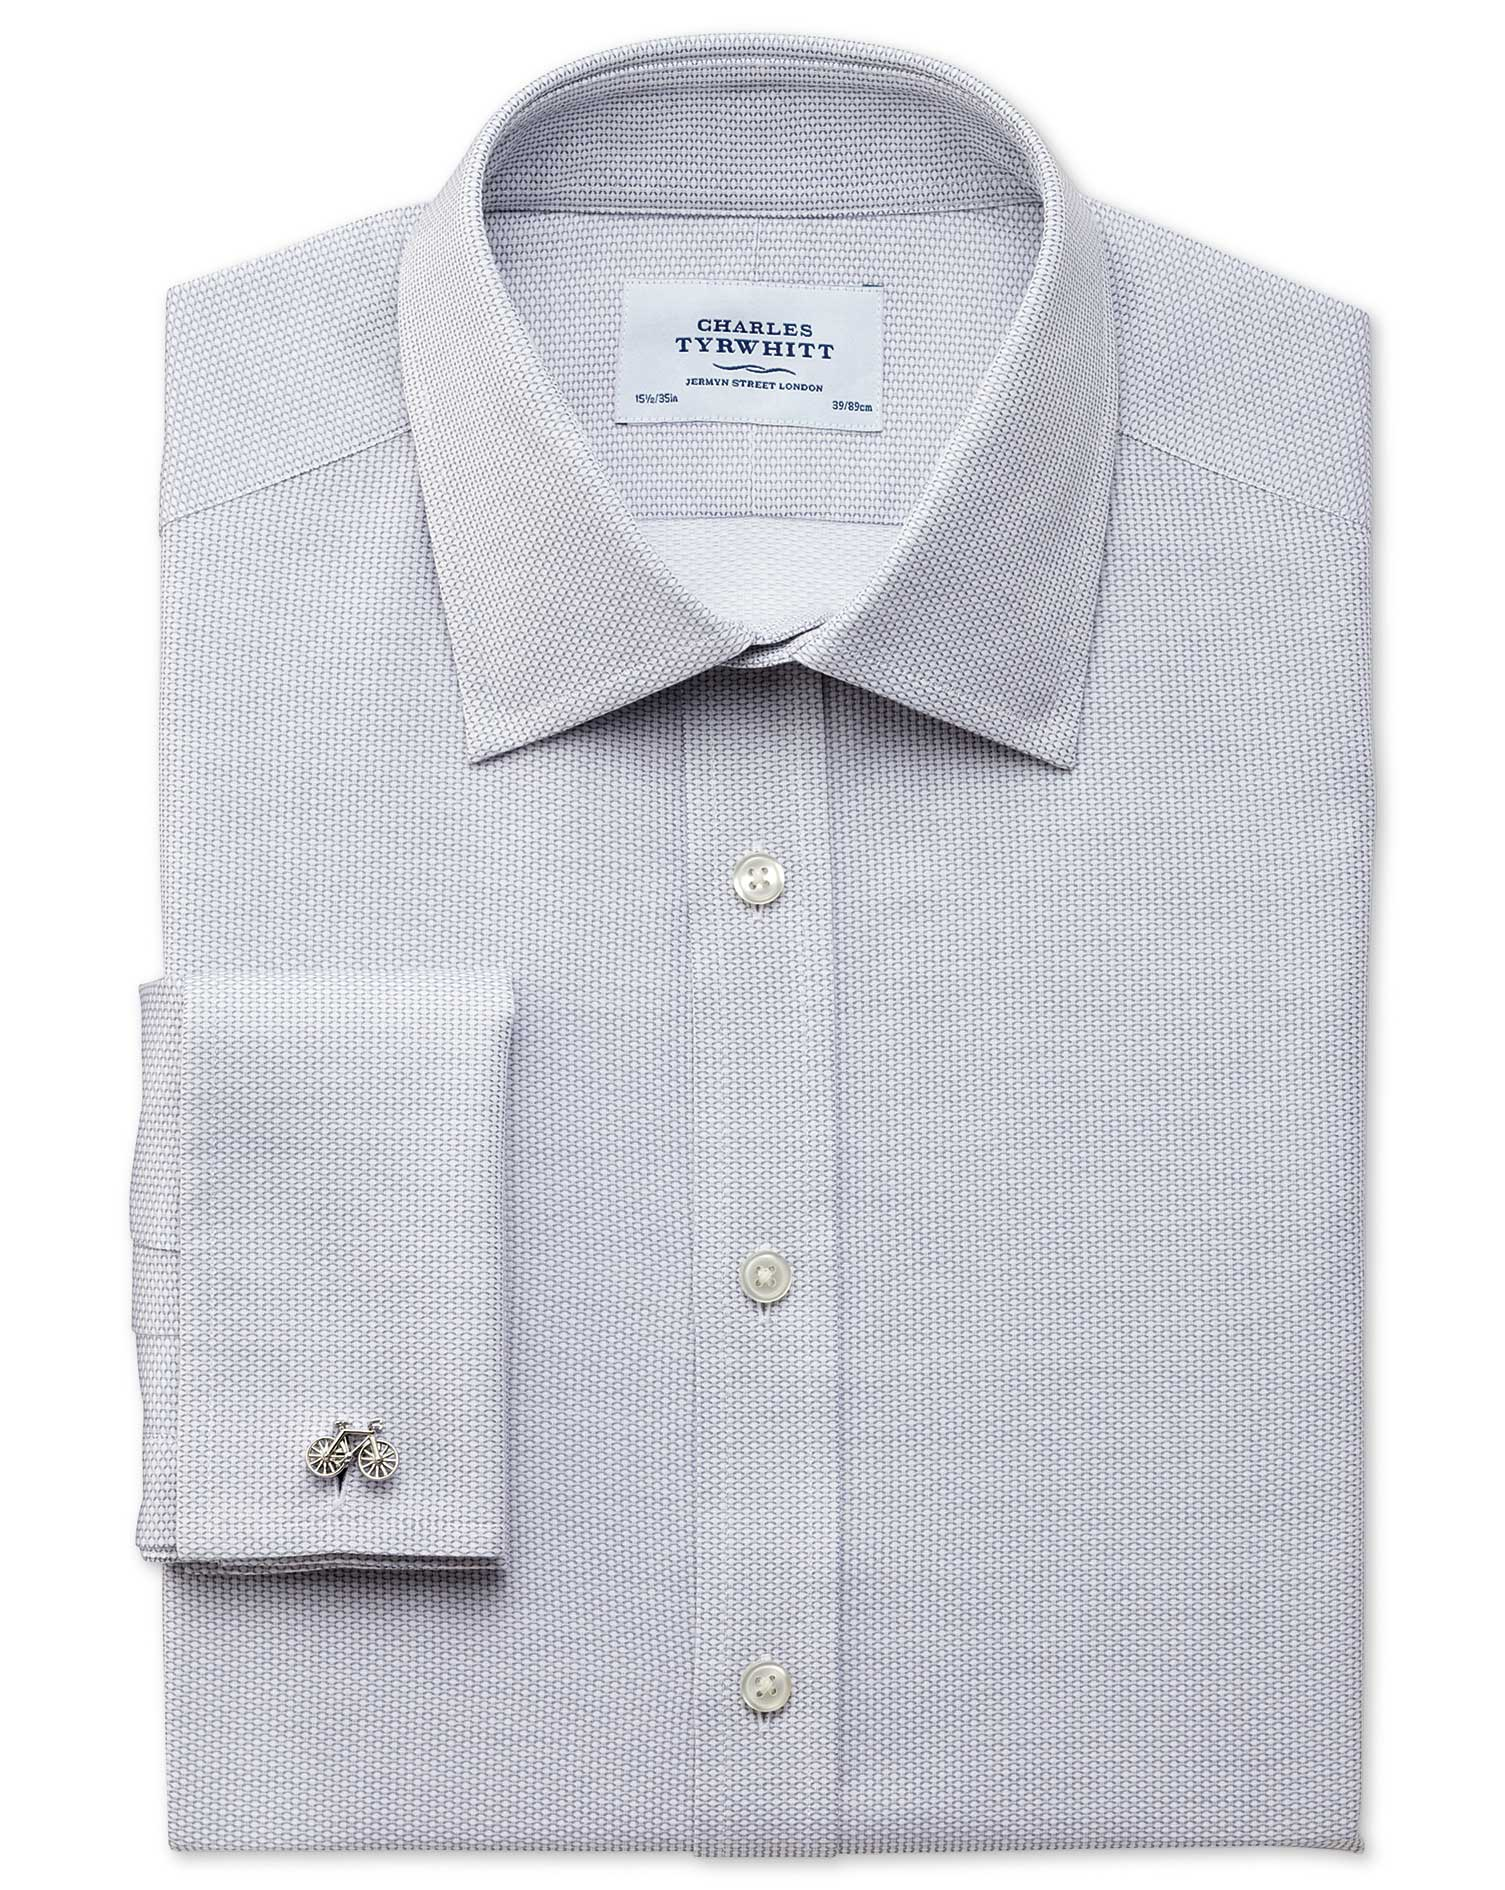 Extra Slim Fit Egyptian Cotton Diamond Texture Light Grey Formal Shirt Single Cuff Size 15.5/34 by C